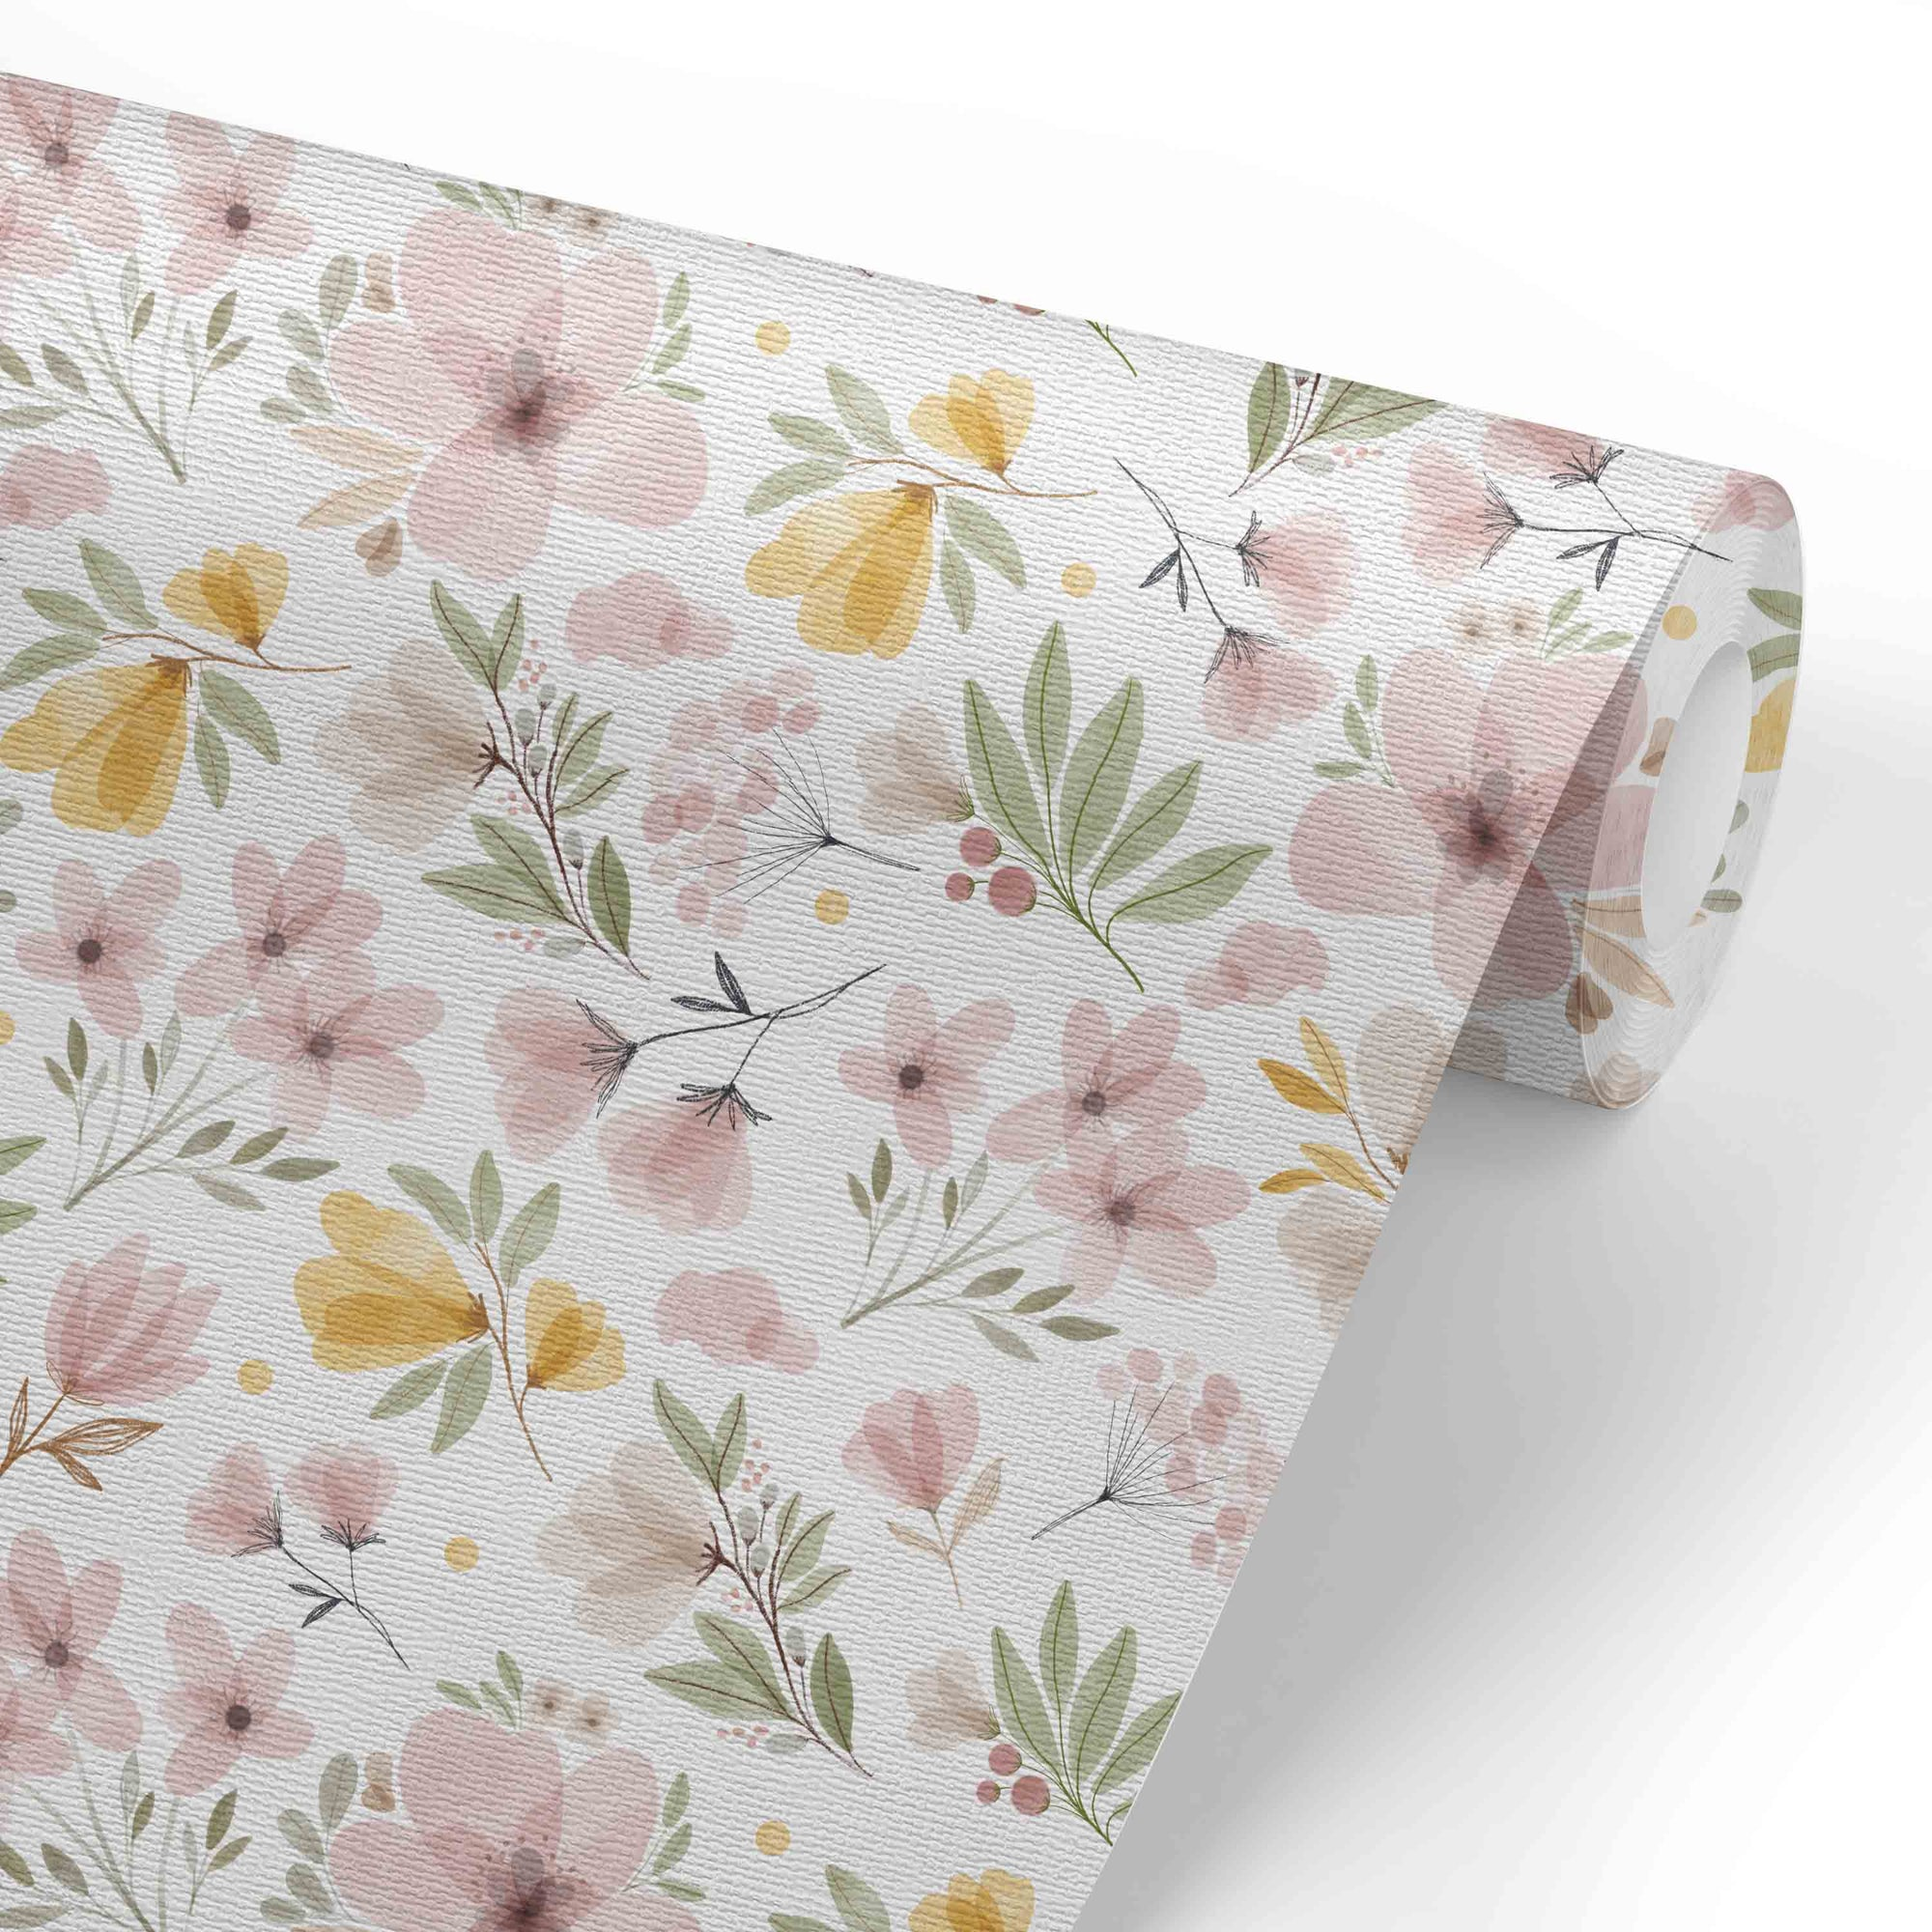 Maeve S Mauve Mustard Floral Removable Wallpaper Caden Lane